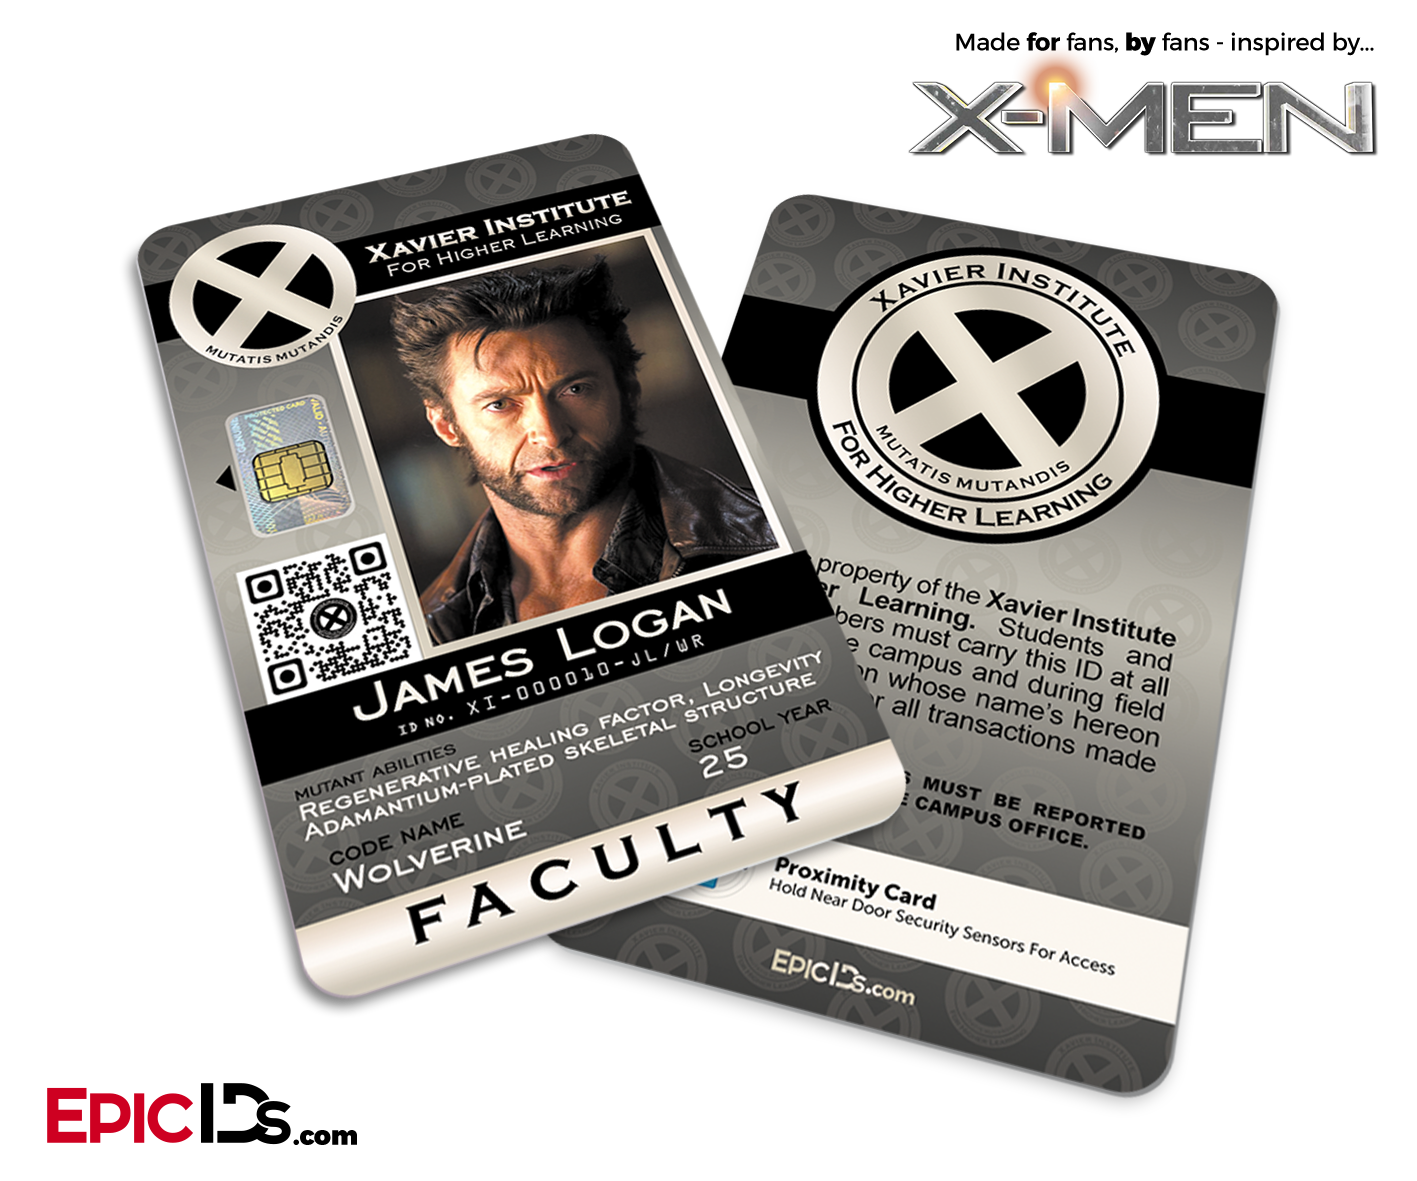 L Id Learning Faculty James - Ids Higher Card Epic For 'x-men' Xavier Institute